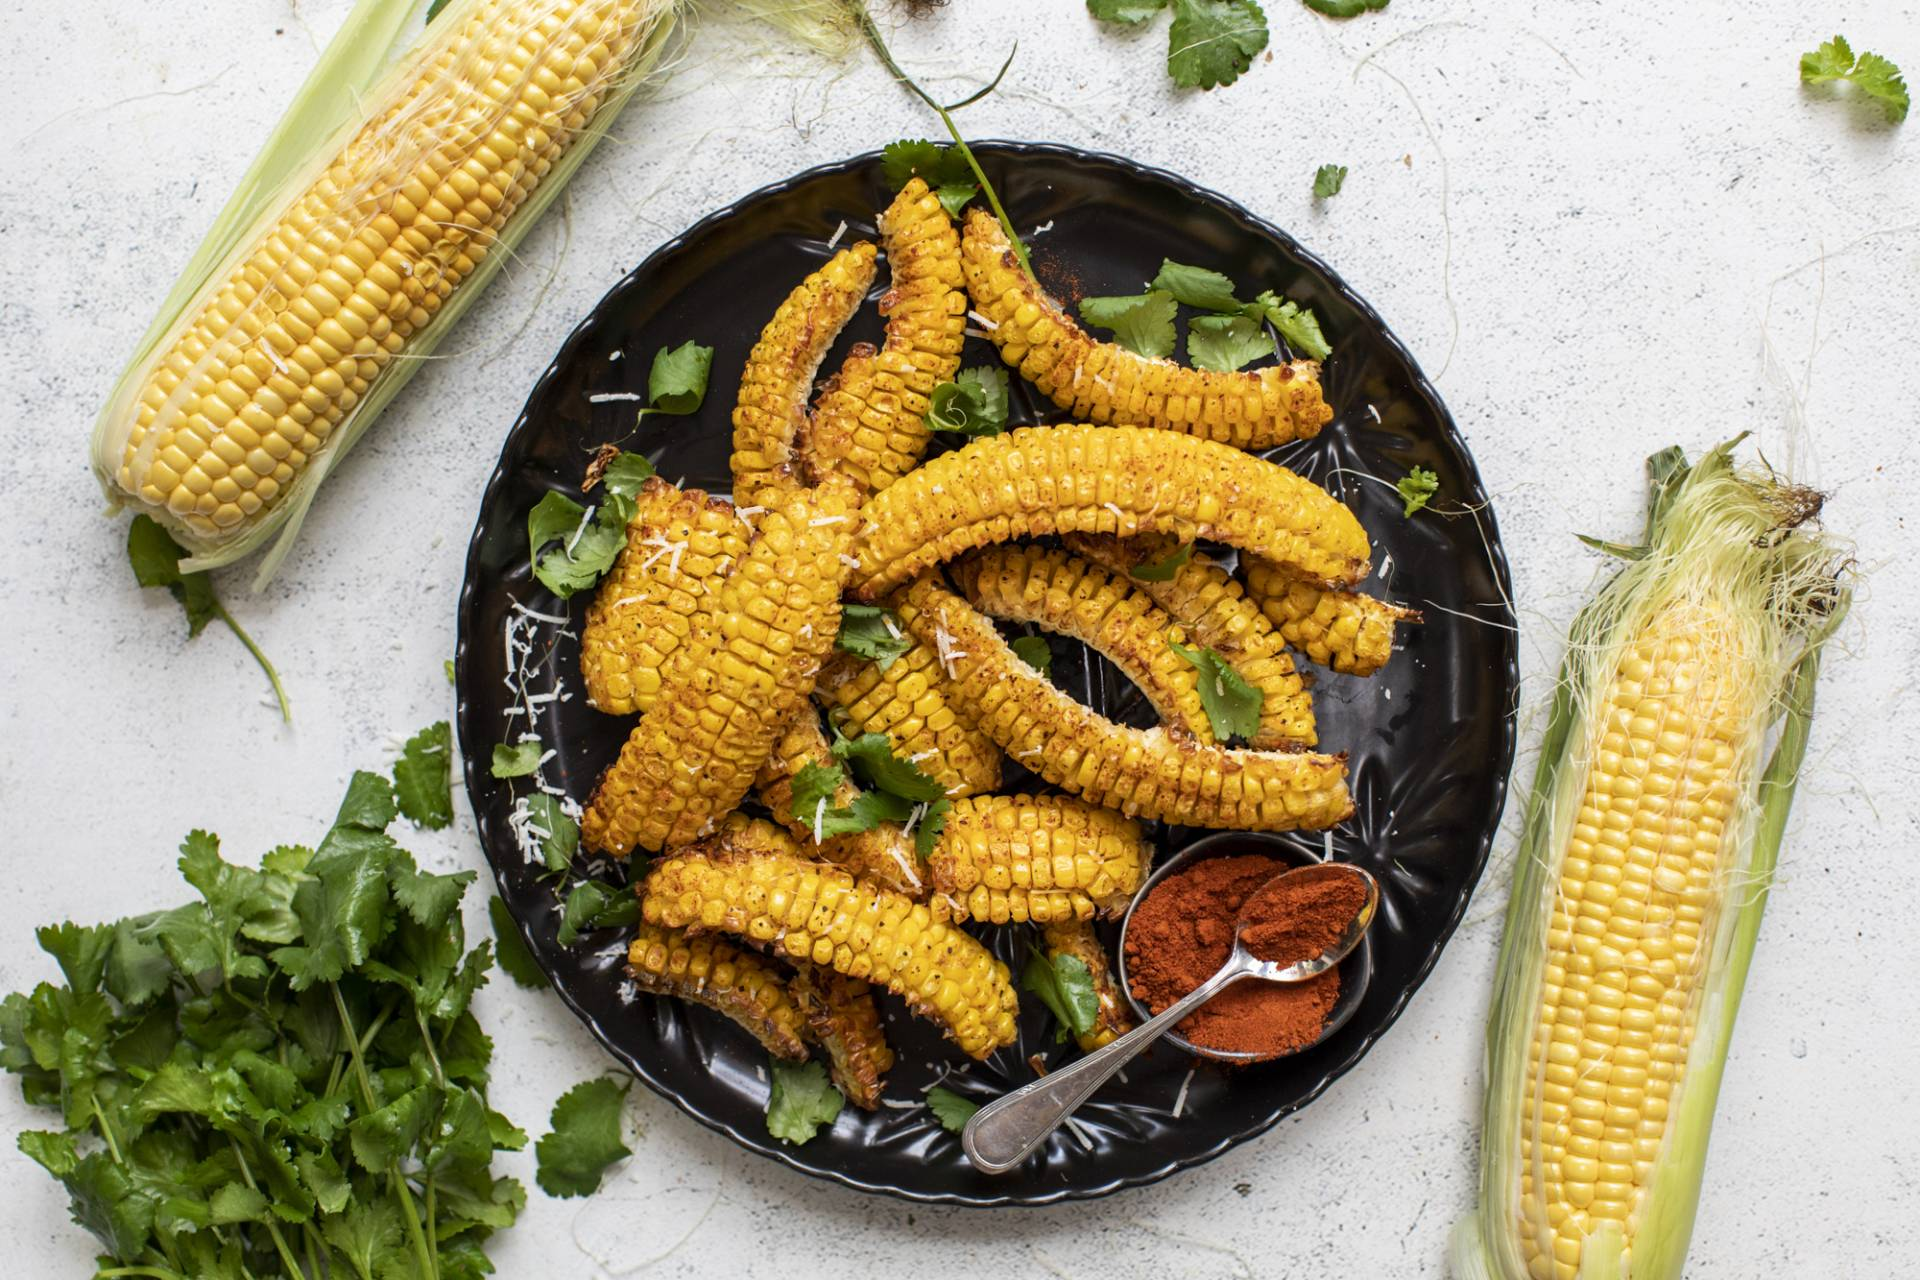 Try This Delicious Recipe for Corn Ribs That's Going Viral on TikTok